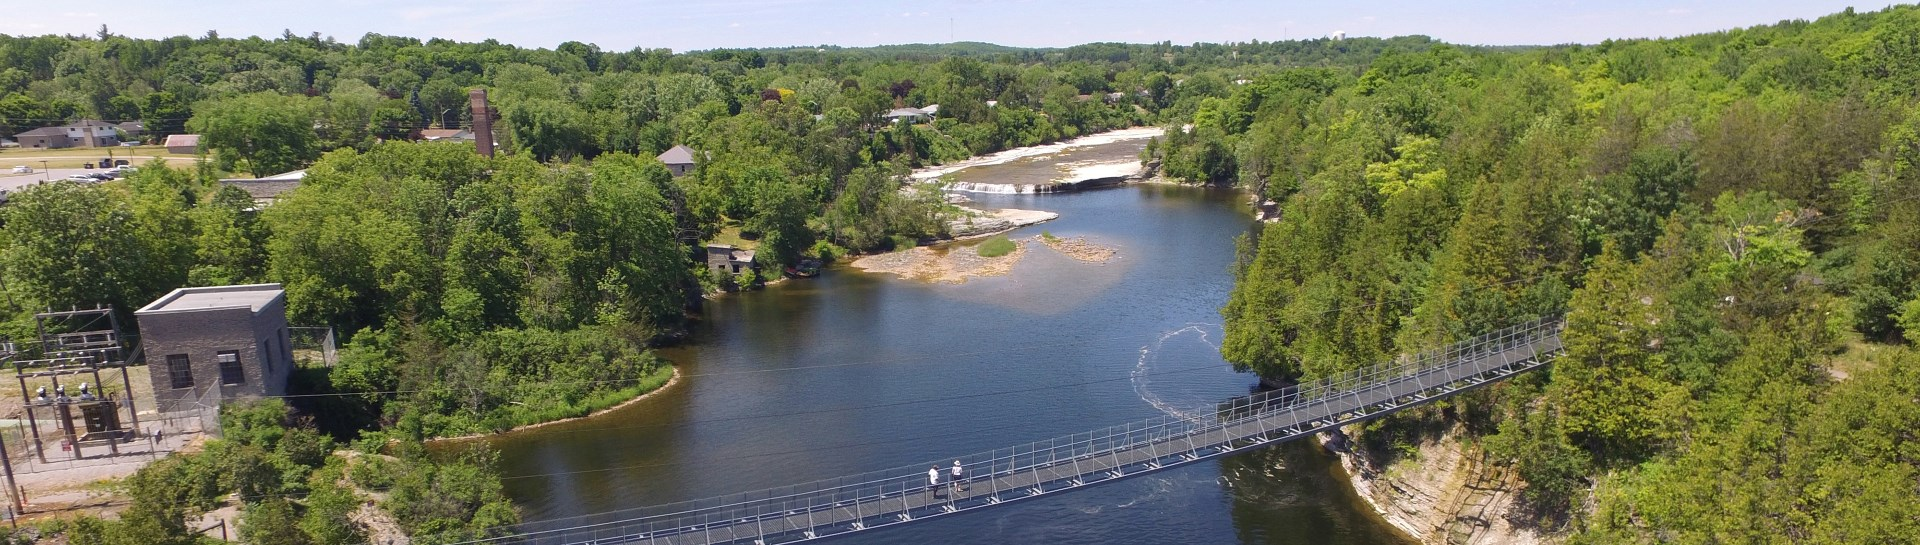 View of Trent River below Ranney Gorge Suspension Bridge